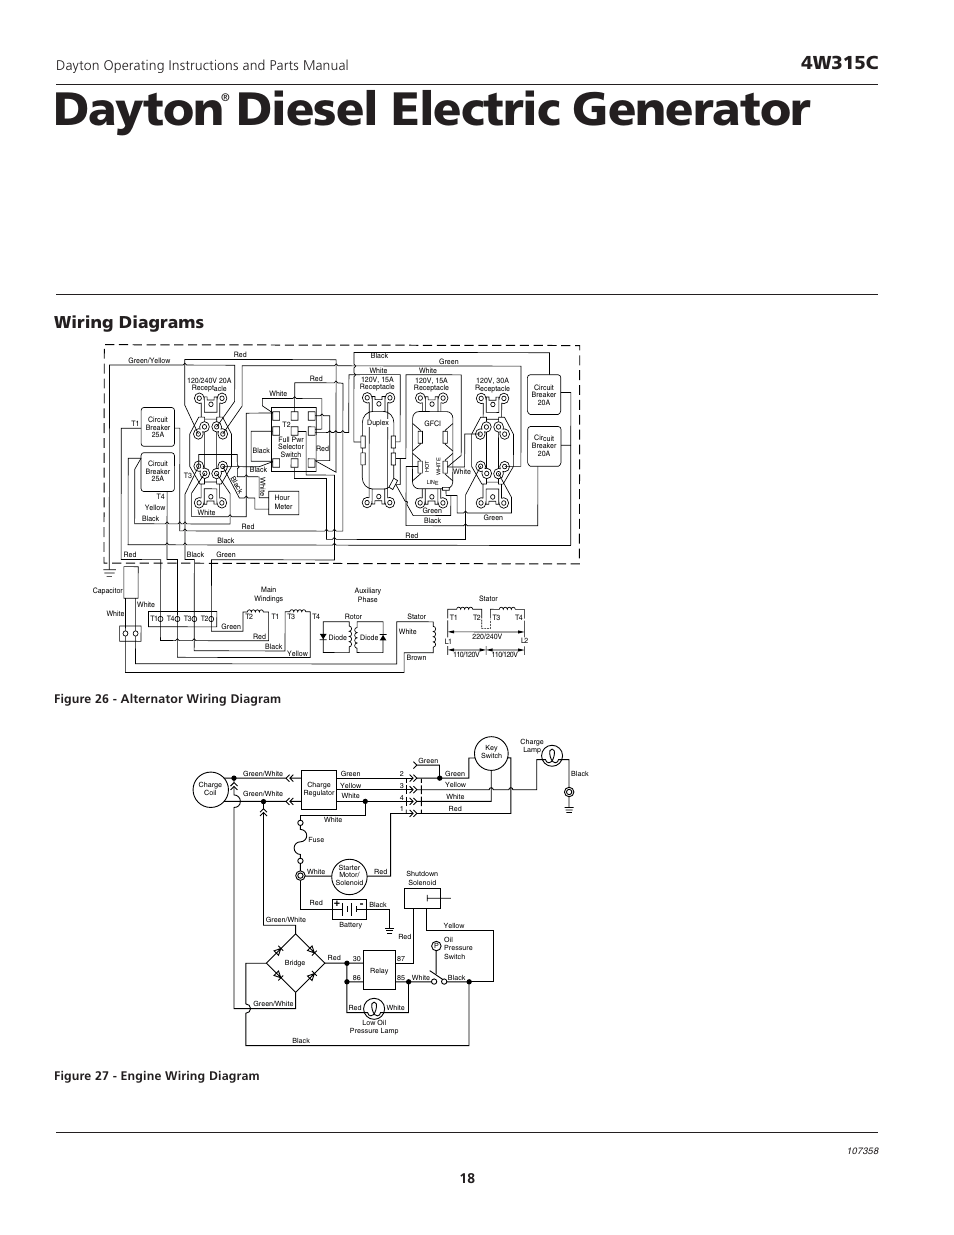 Dayton Pendant Wiring Diagram - dayton motor wiring diagram ... on